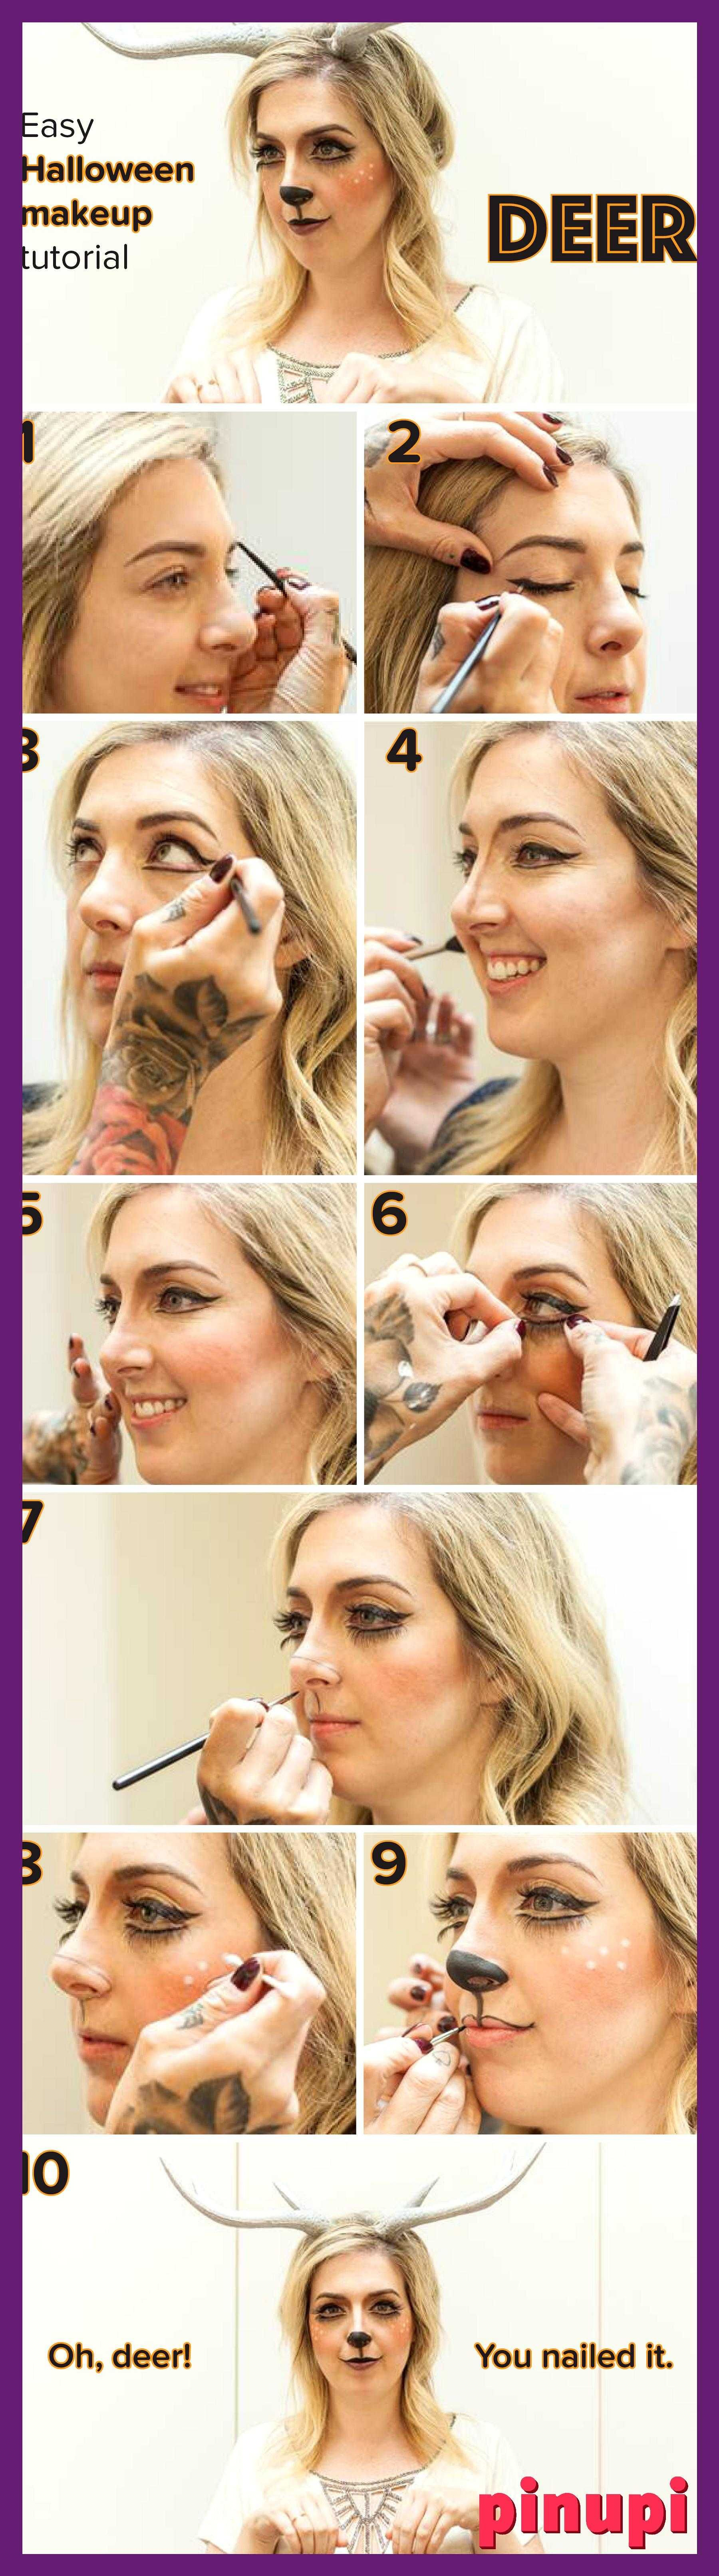 This Halloween Deer Makeup Tutorial Is Secretly The World S Easiest Costume This Halloween Deer Makeup Tutorial Is Secretly The World S Easiest Costume If You Re Intimidated By Halloween Makeup Tutorials This Deer Costume Will Change Your Mind This Might Be The Least Intimidating Halloween Makeup Tutorials Ever